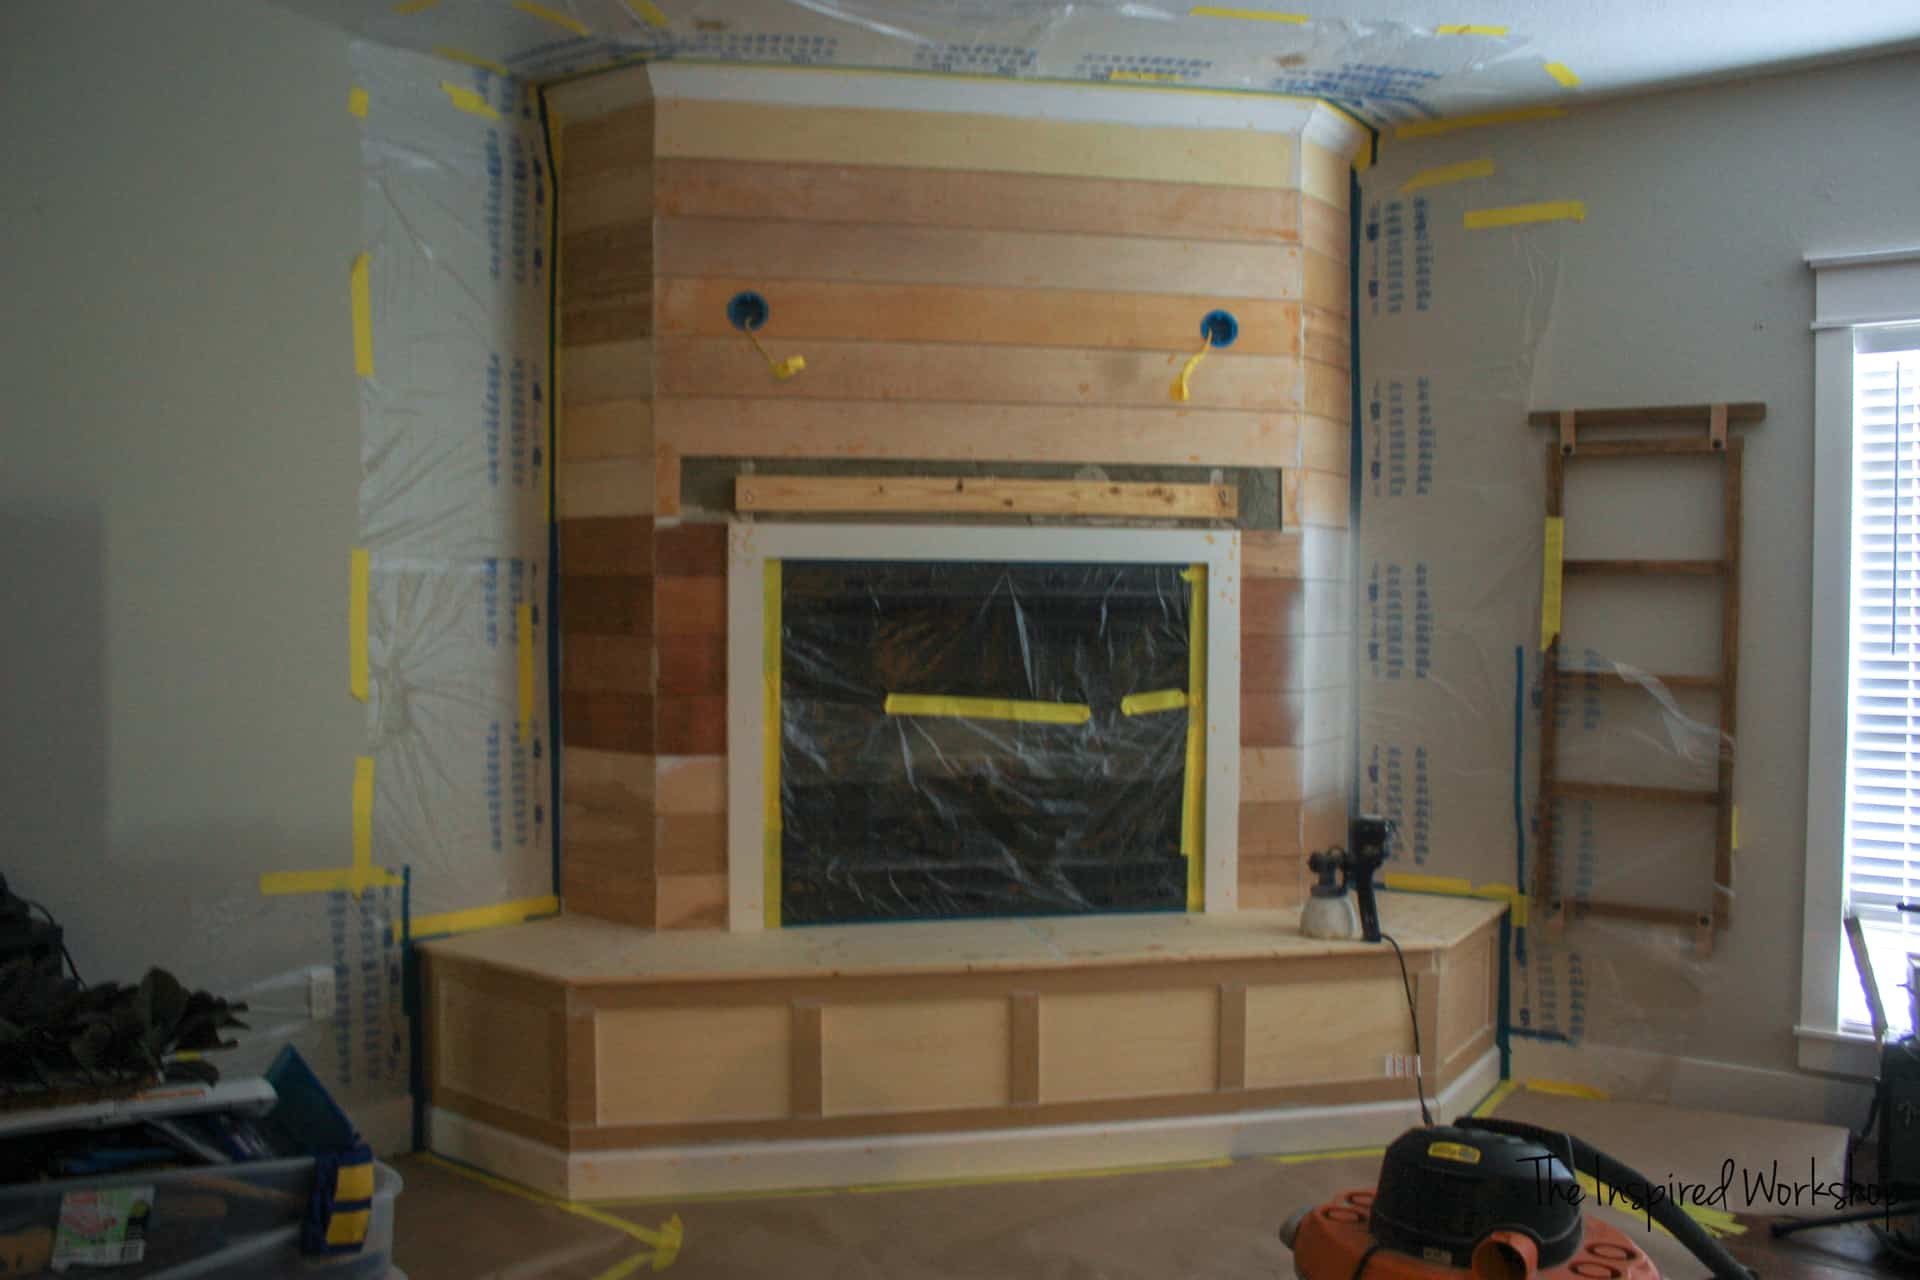 Fireplace Makeover - painter's tape in place and ready to spray paint